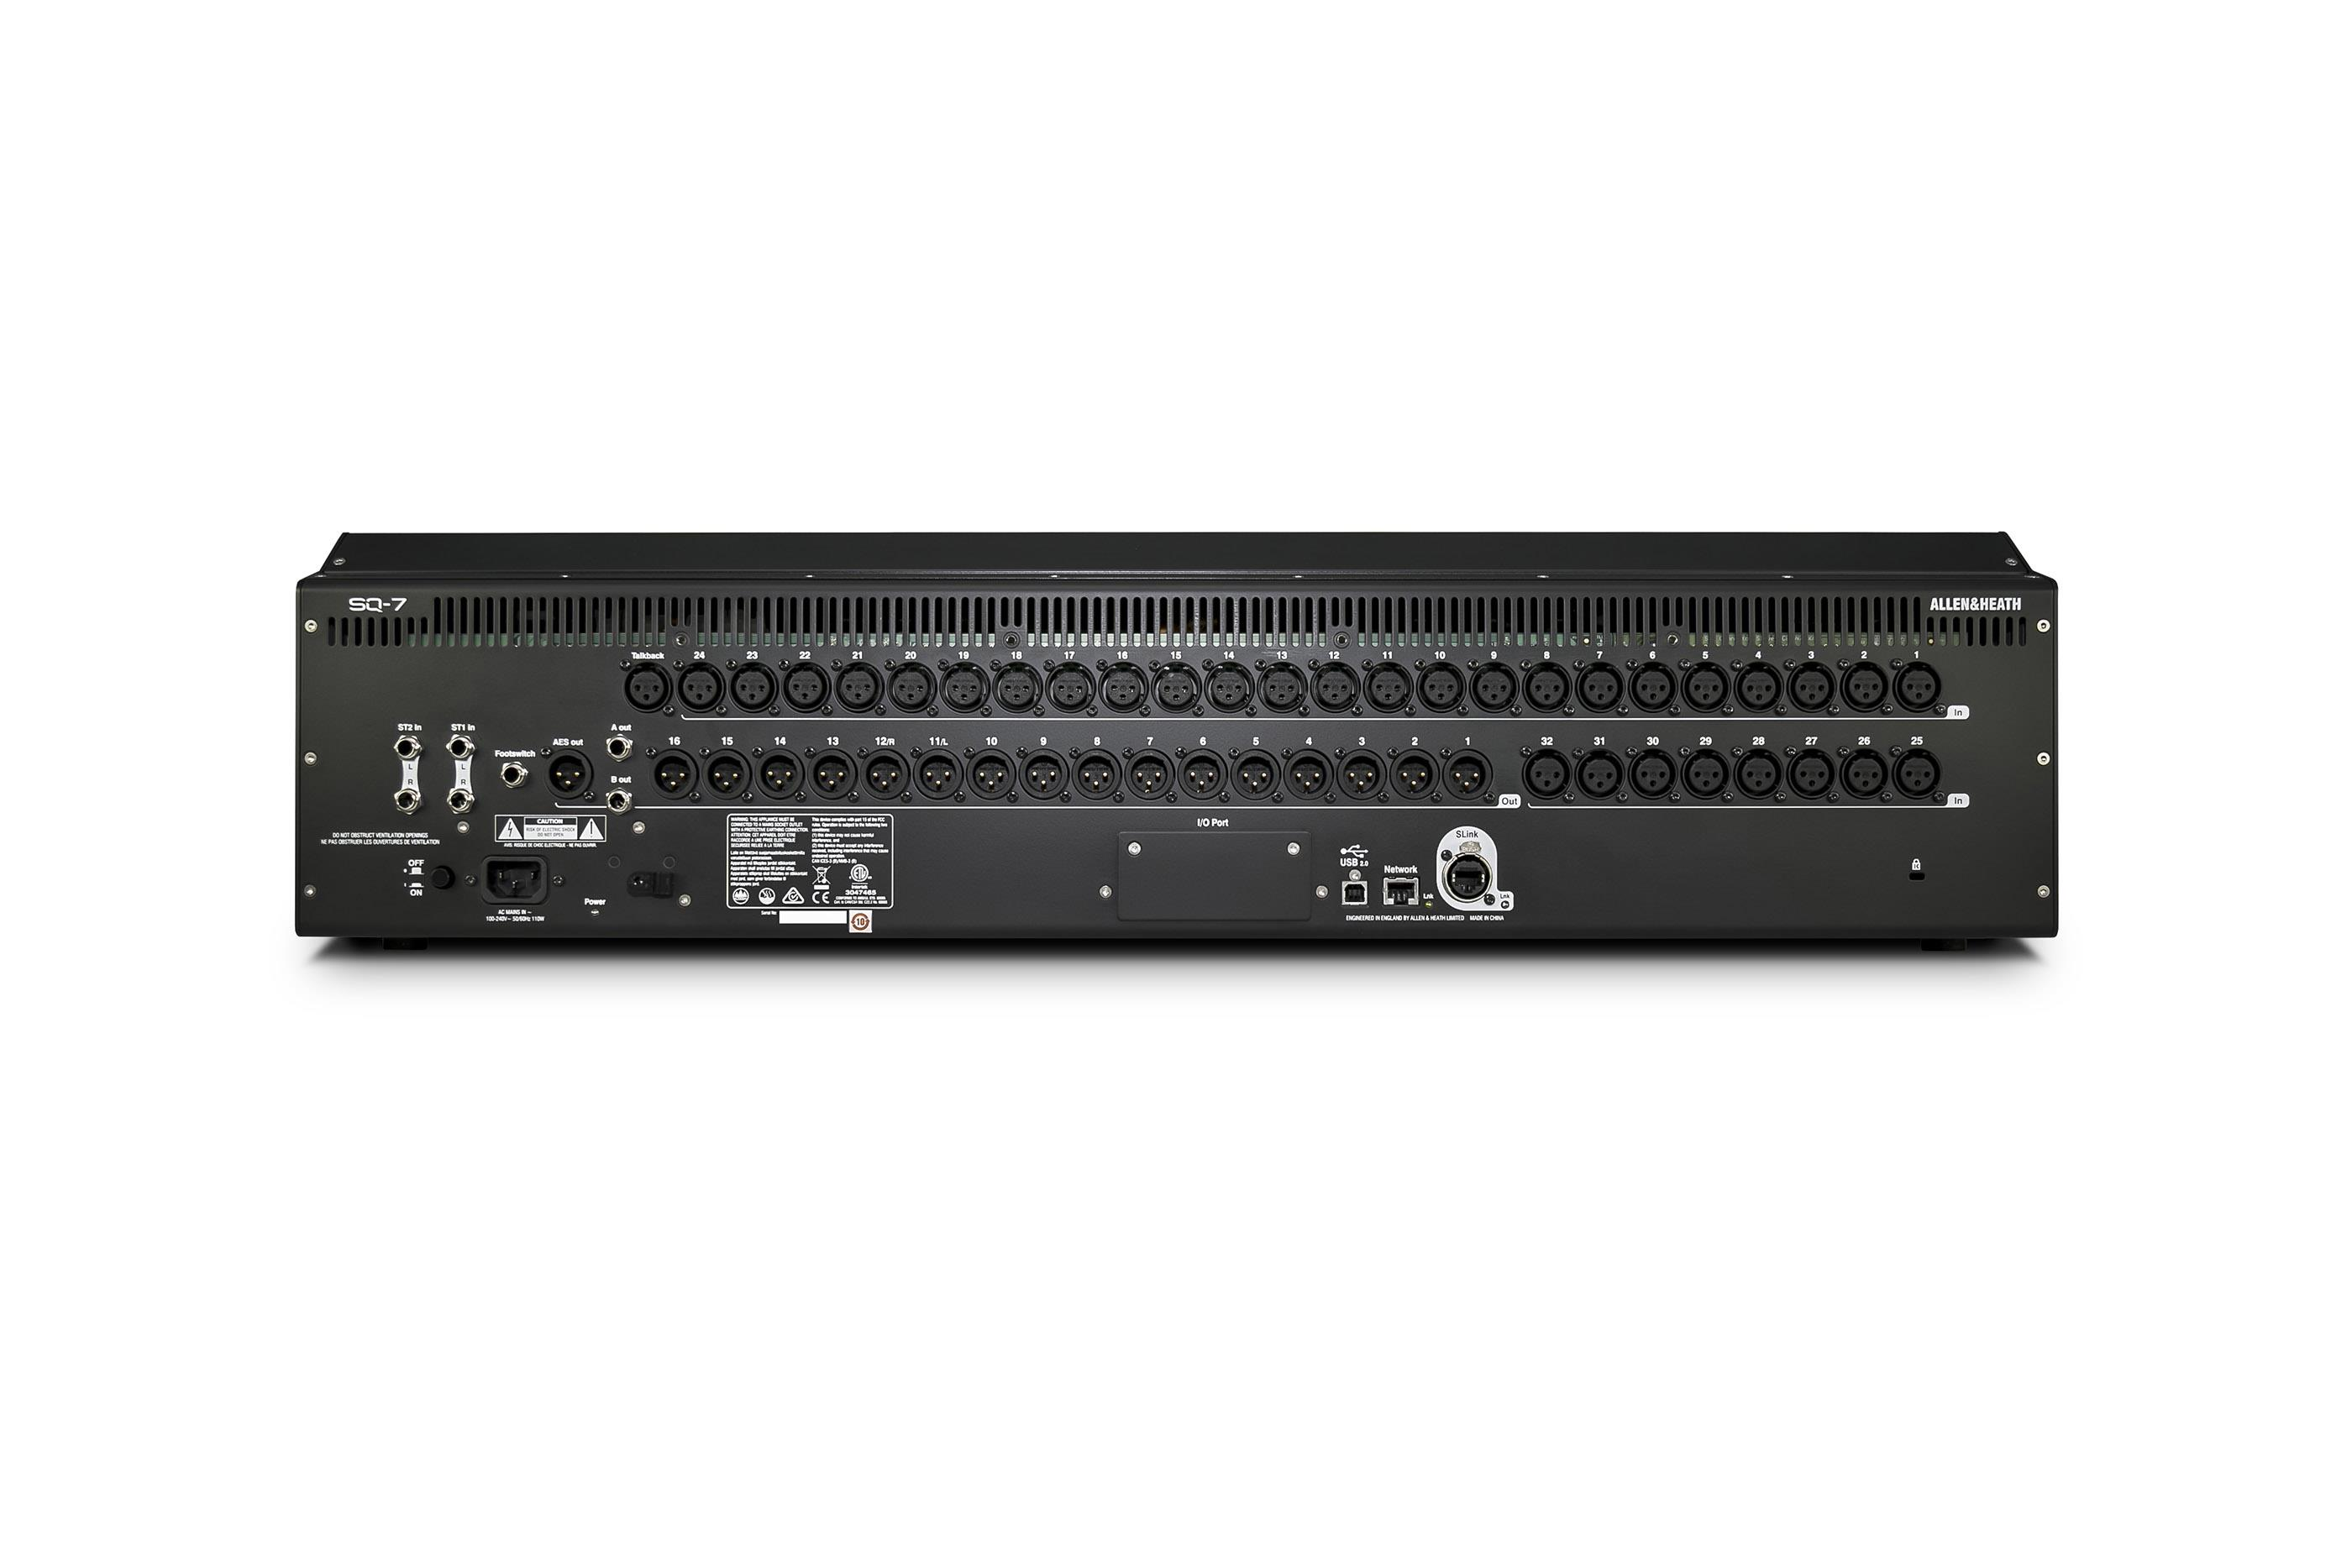 Allen Heath Sq 7 Digitales Mischpult 48 Channels 36 Busse Cat6 Patch Panel Besides 24 Port Further